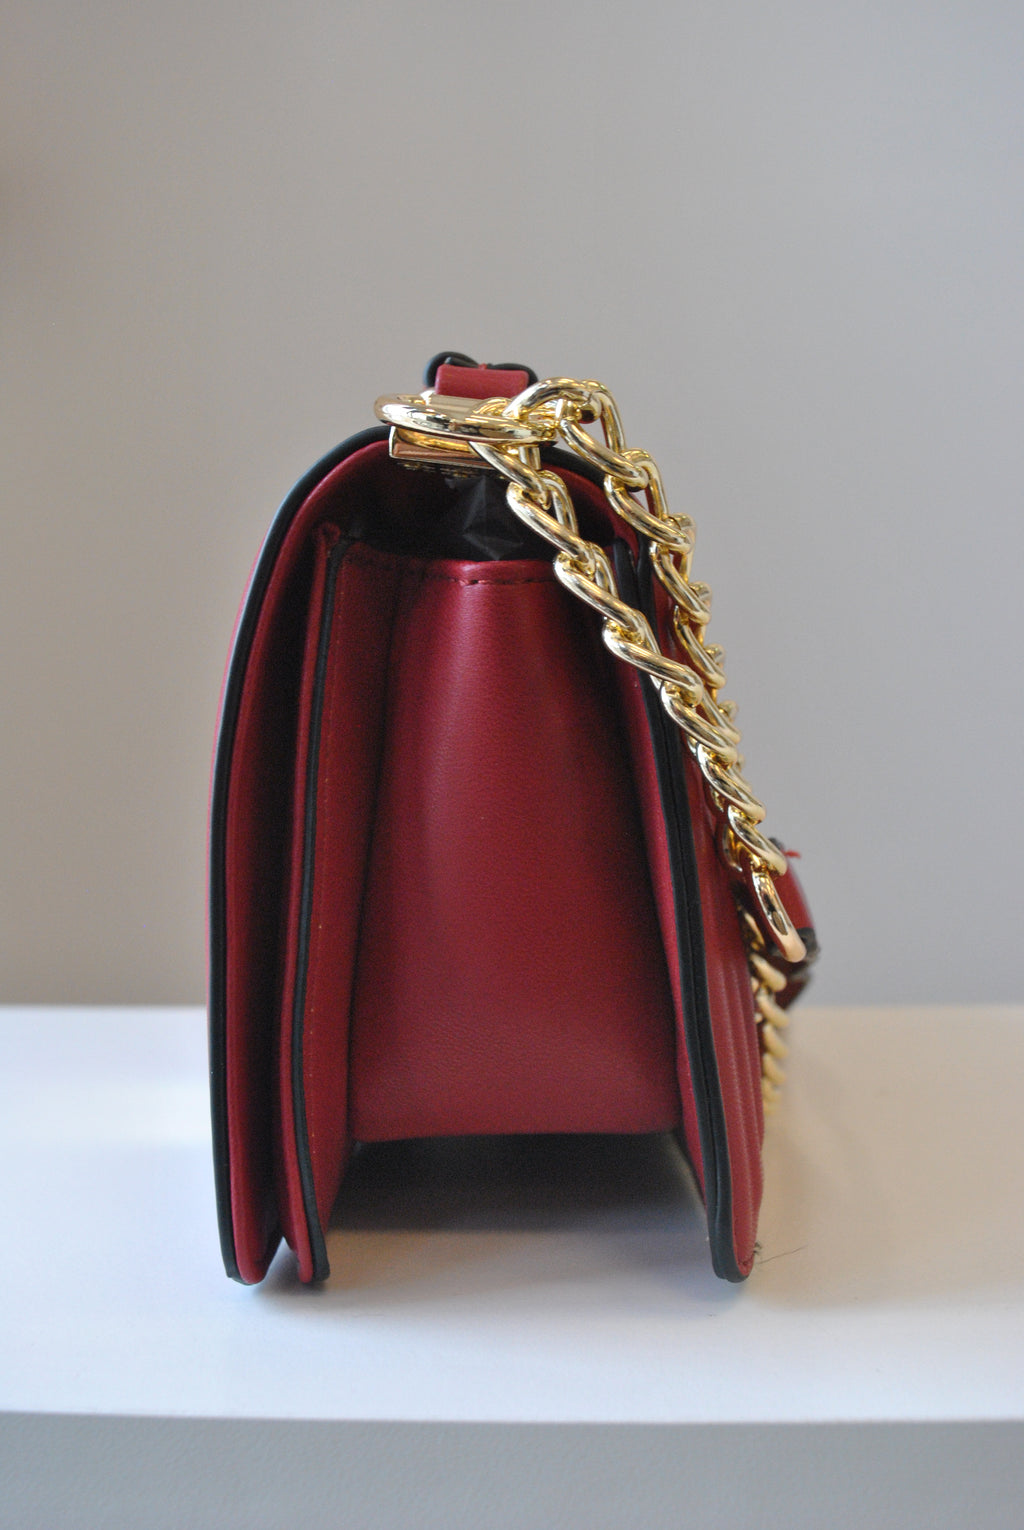 DEEP RED COLOR GUILTED CROSSBODY BAG WITH GOLD CHAIN